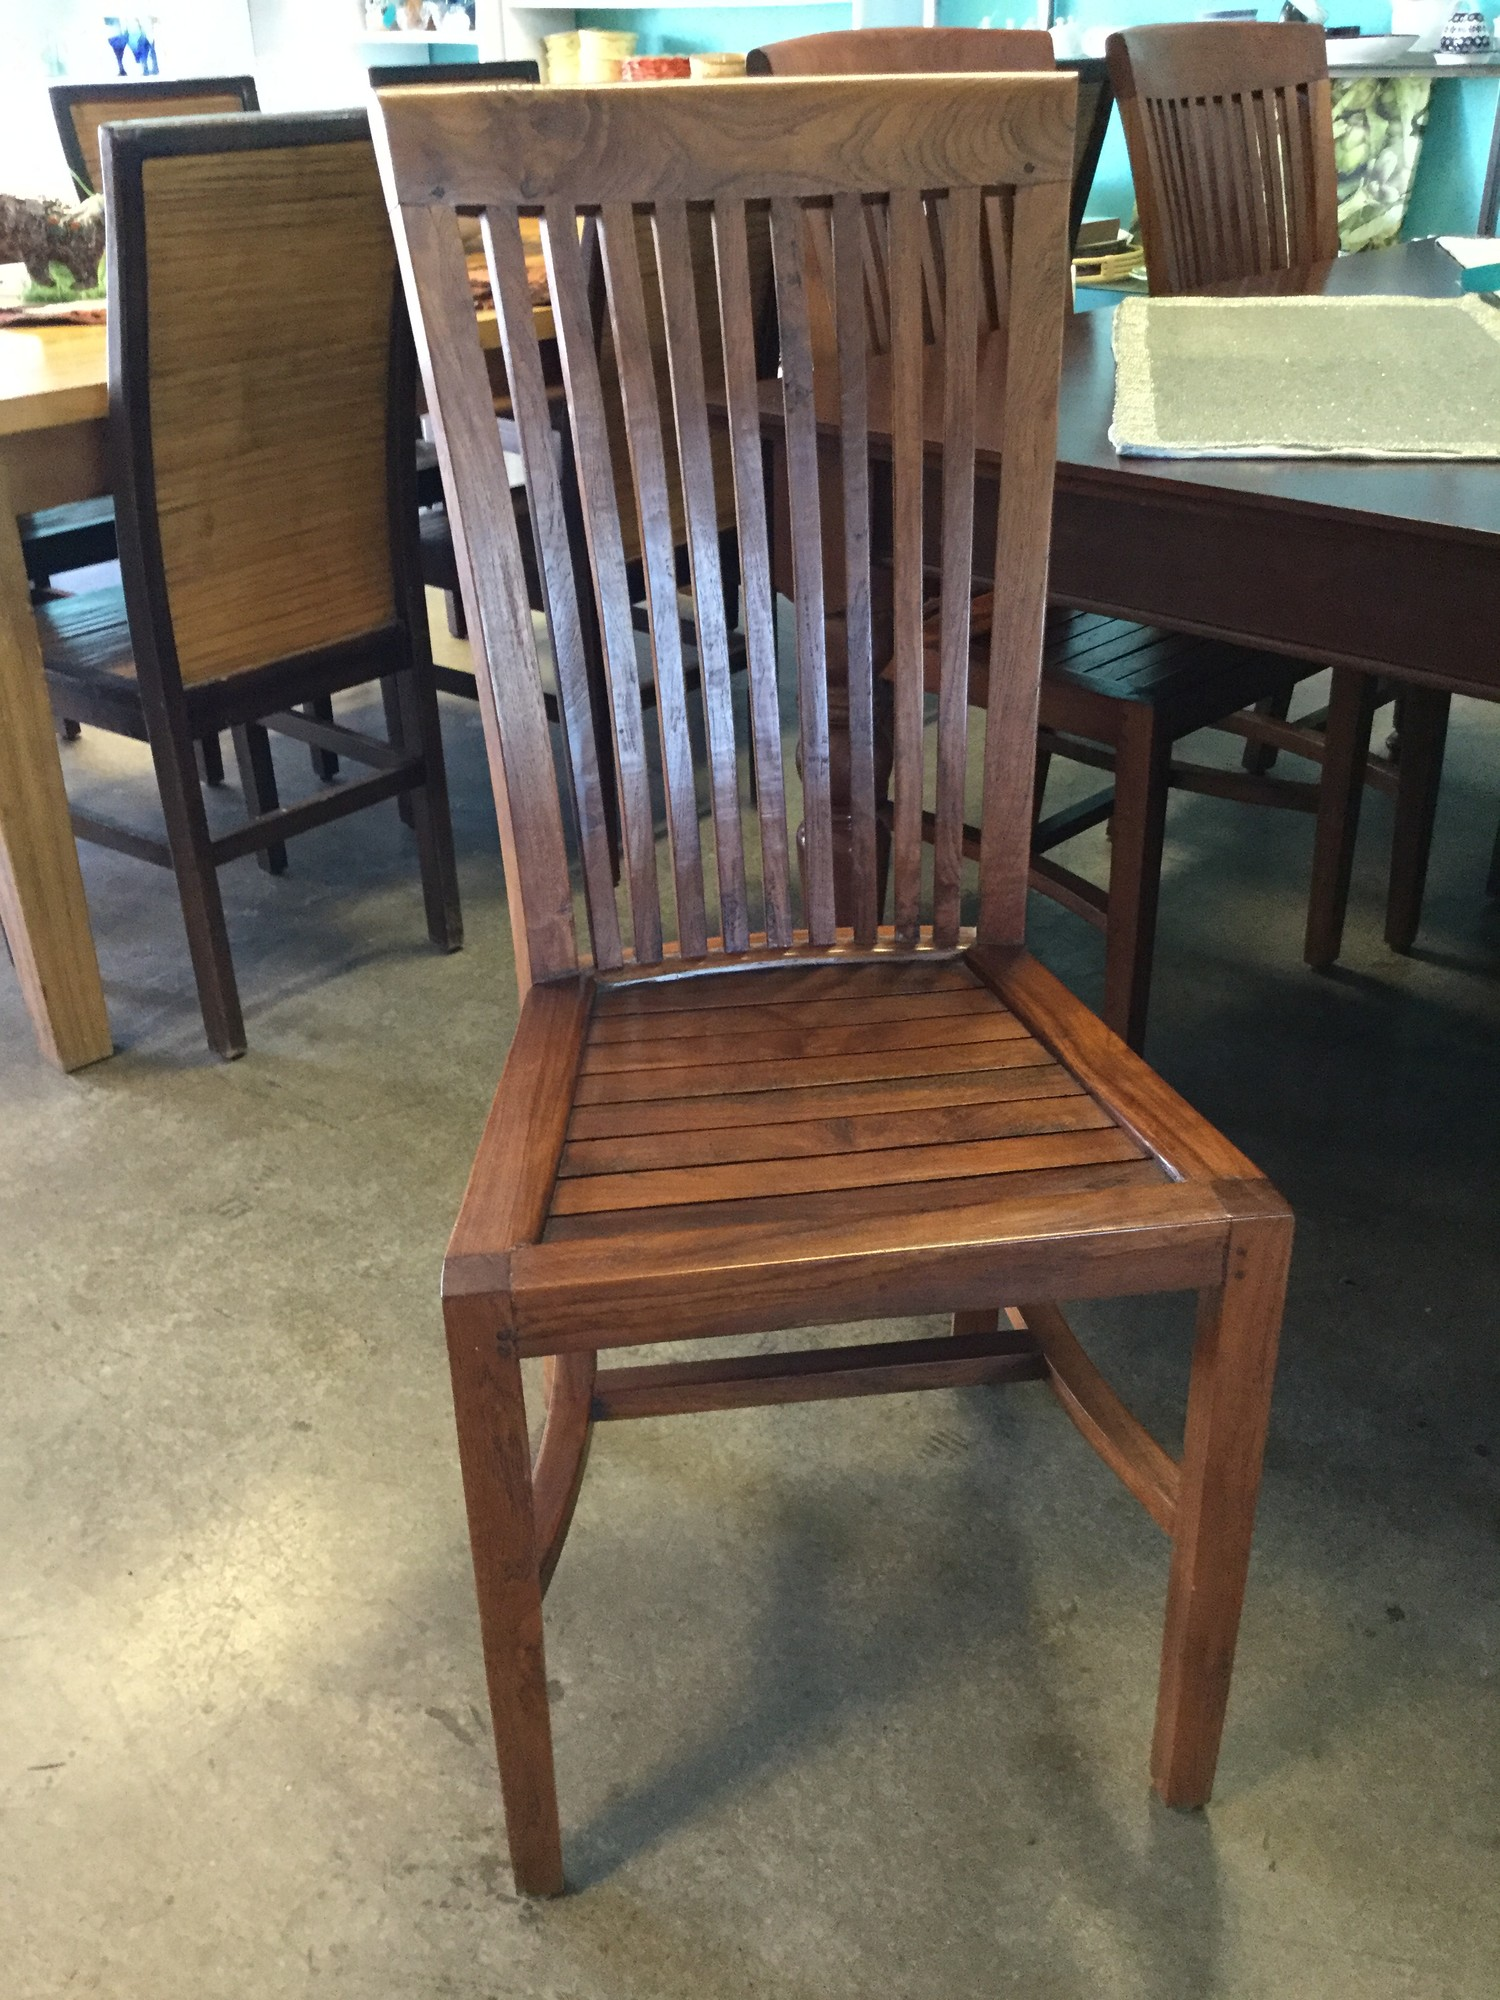 DiningChairs-hardwood, SetOf6, Size: Indonesian